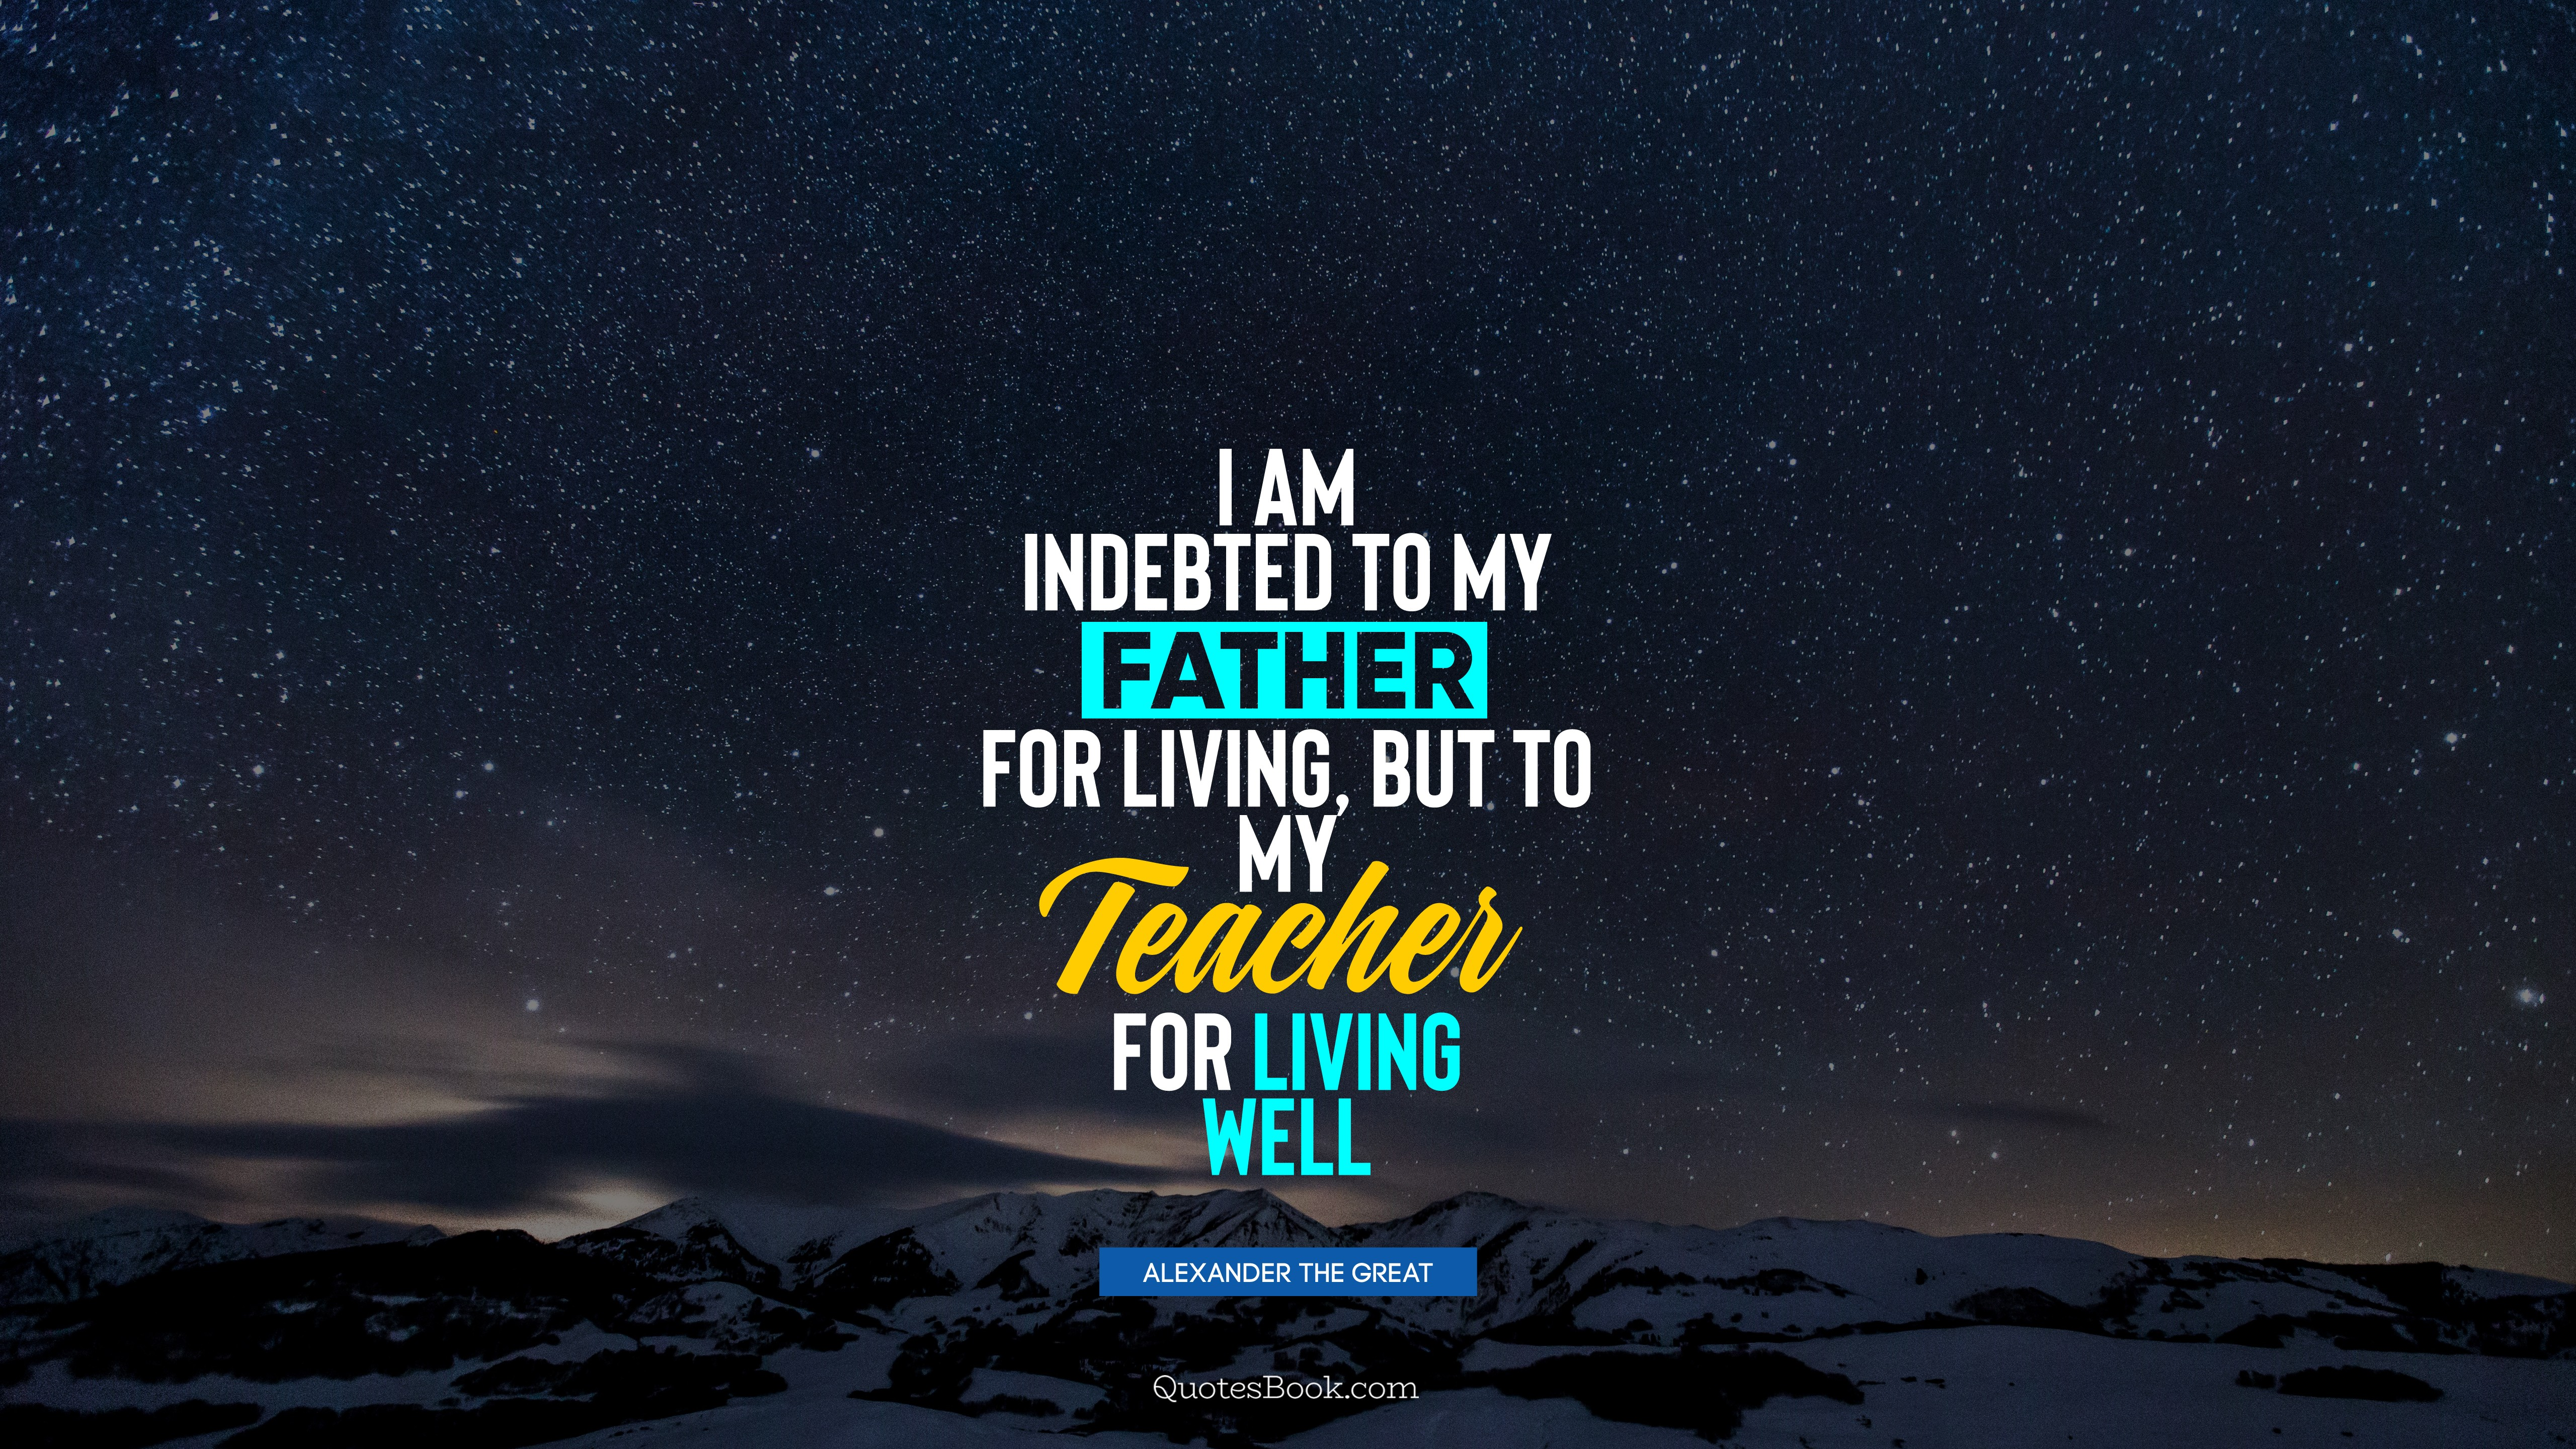 I am indebted to my father for living, but to my teacher for